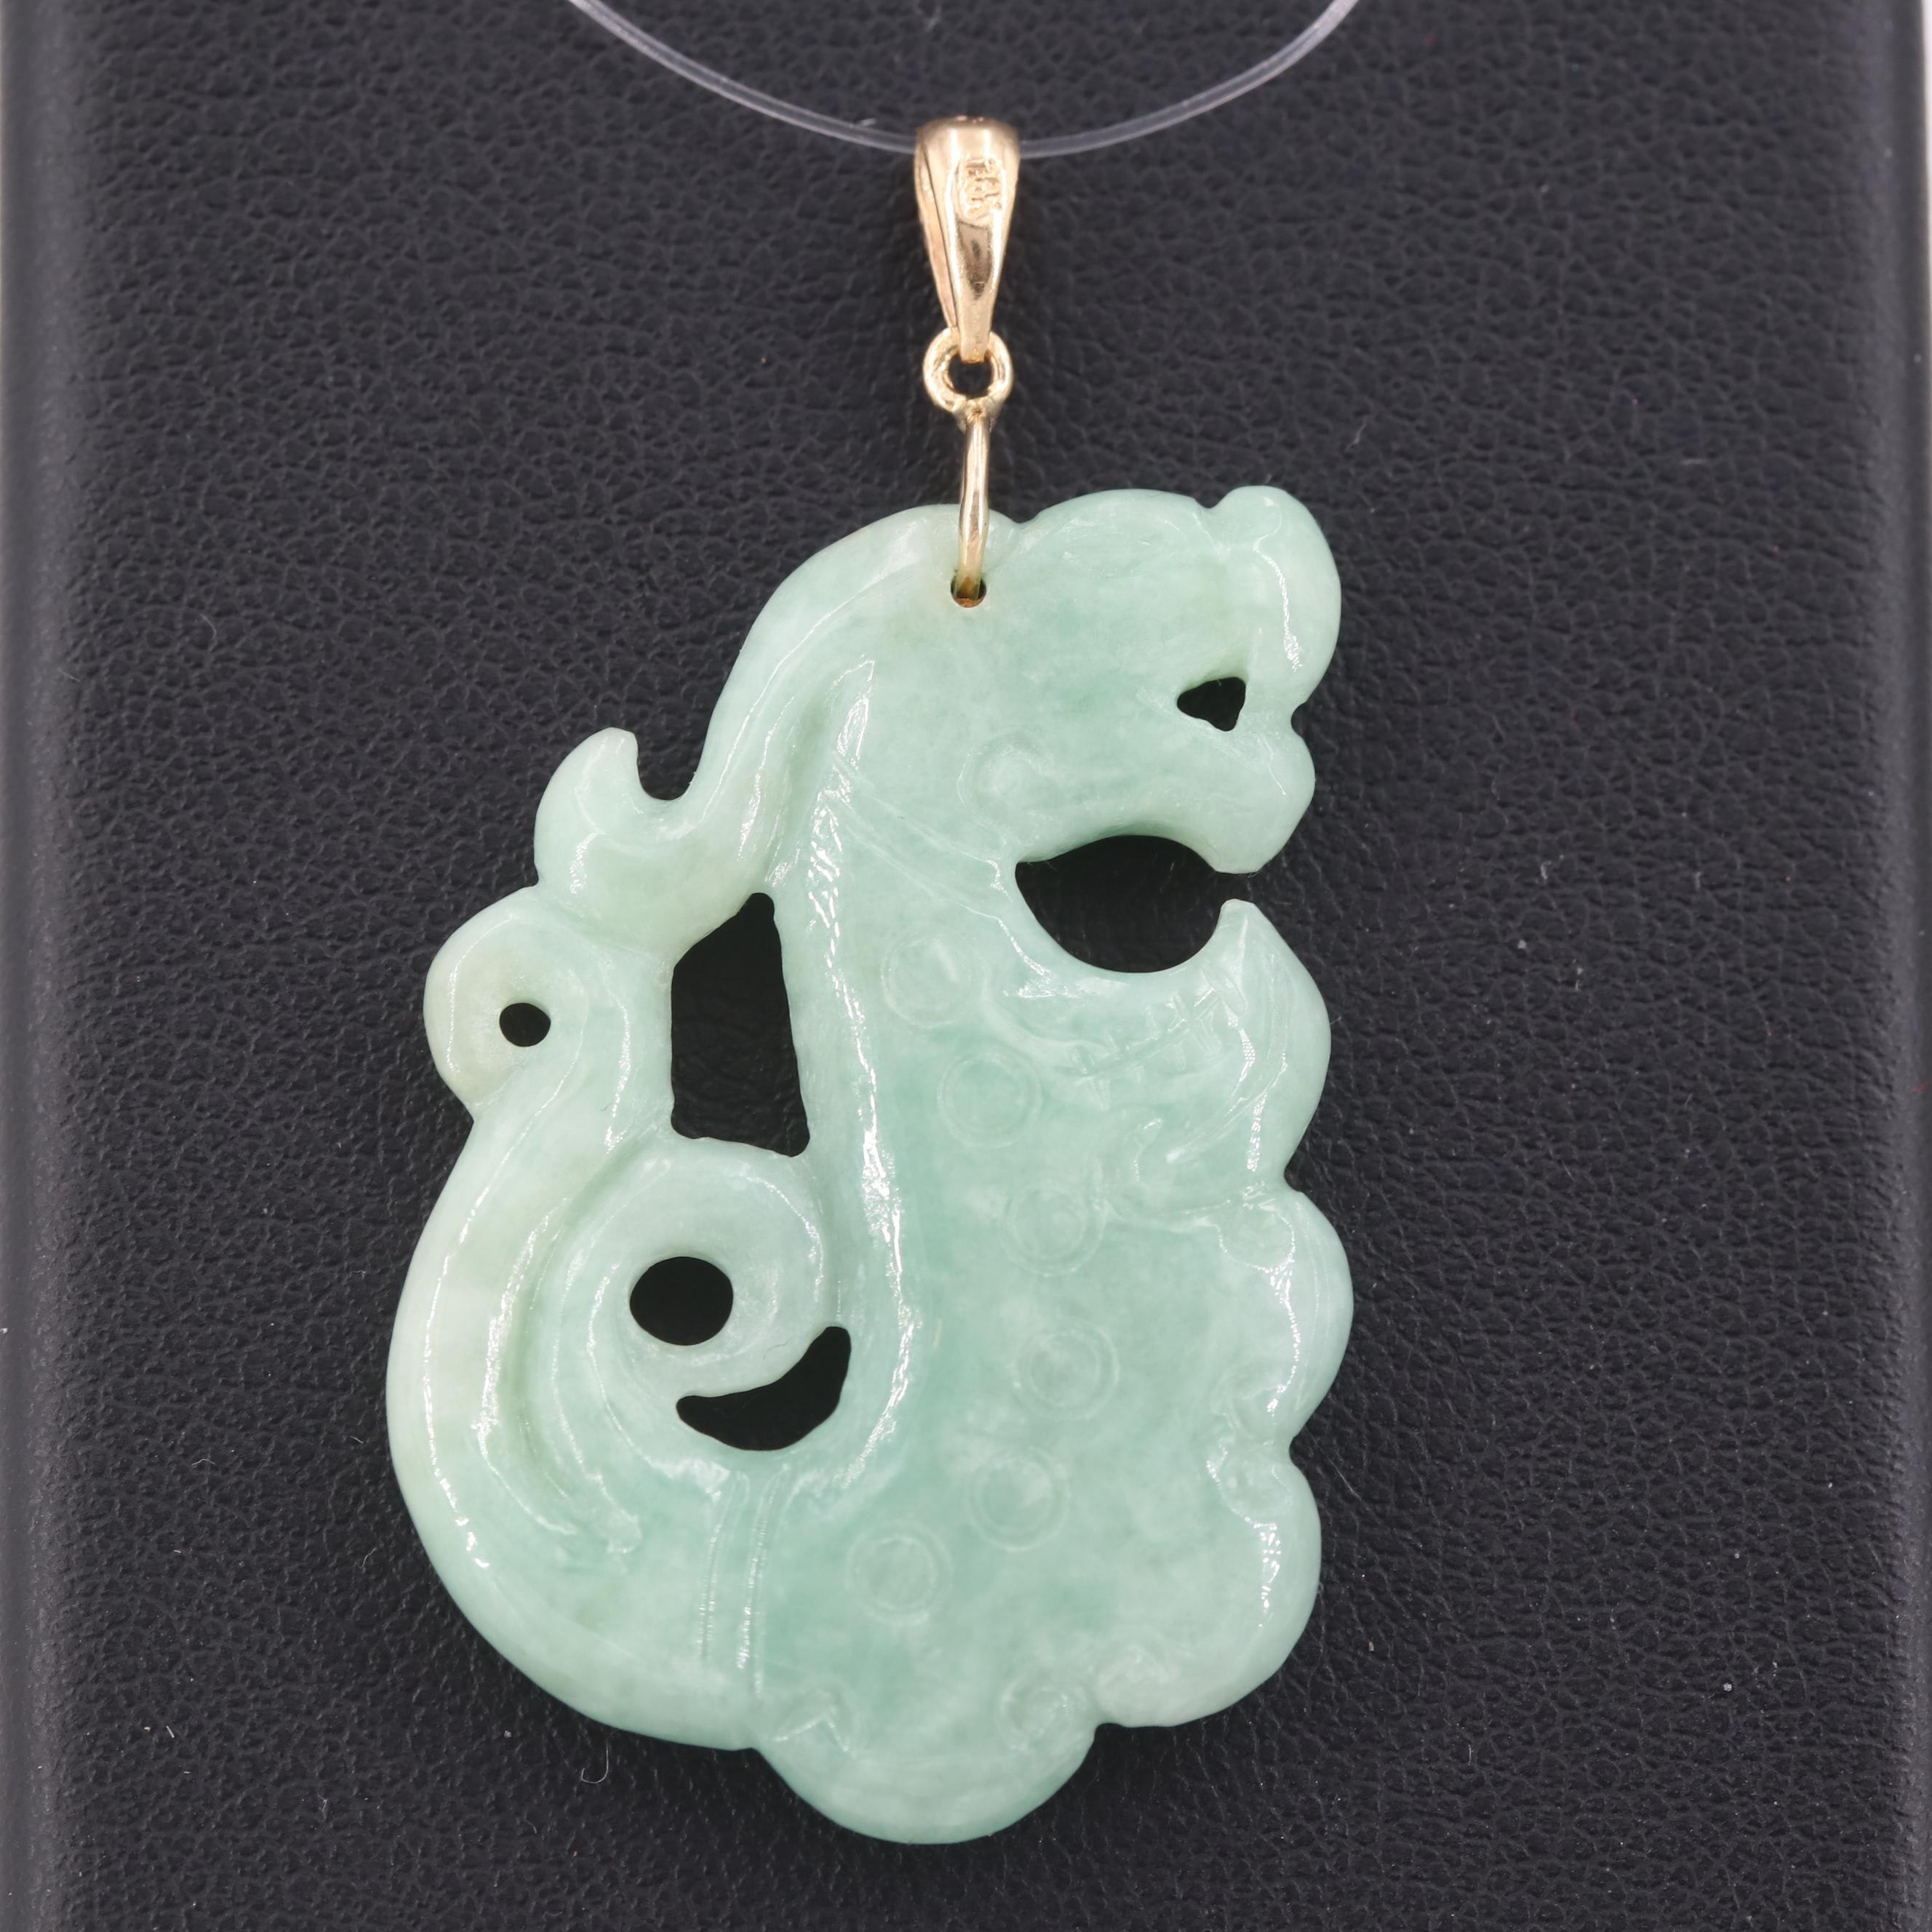 Carved Jadeite Dragon Pendant with 14K Yellow Gold